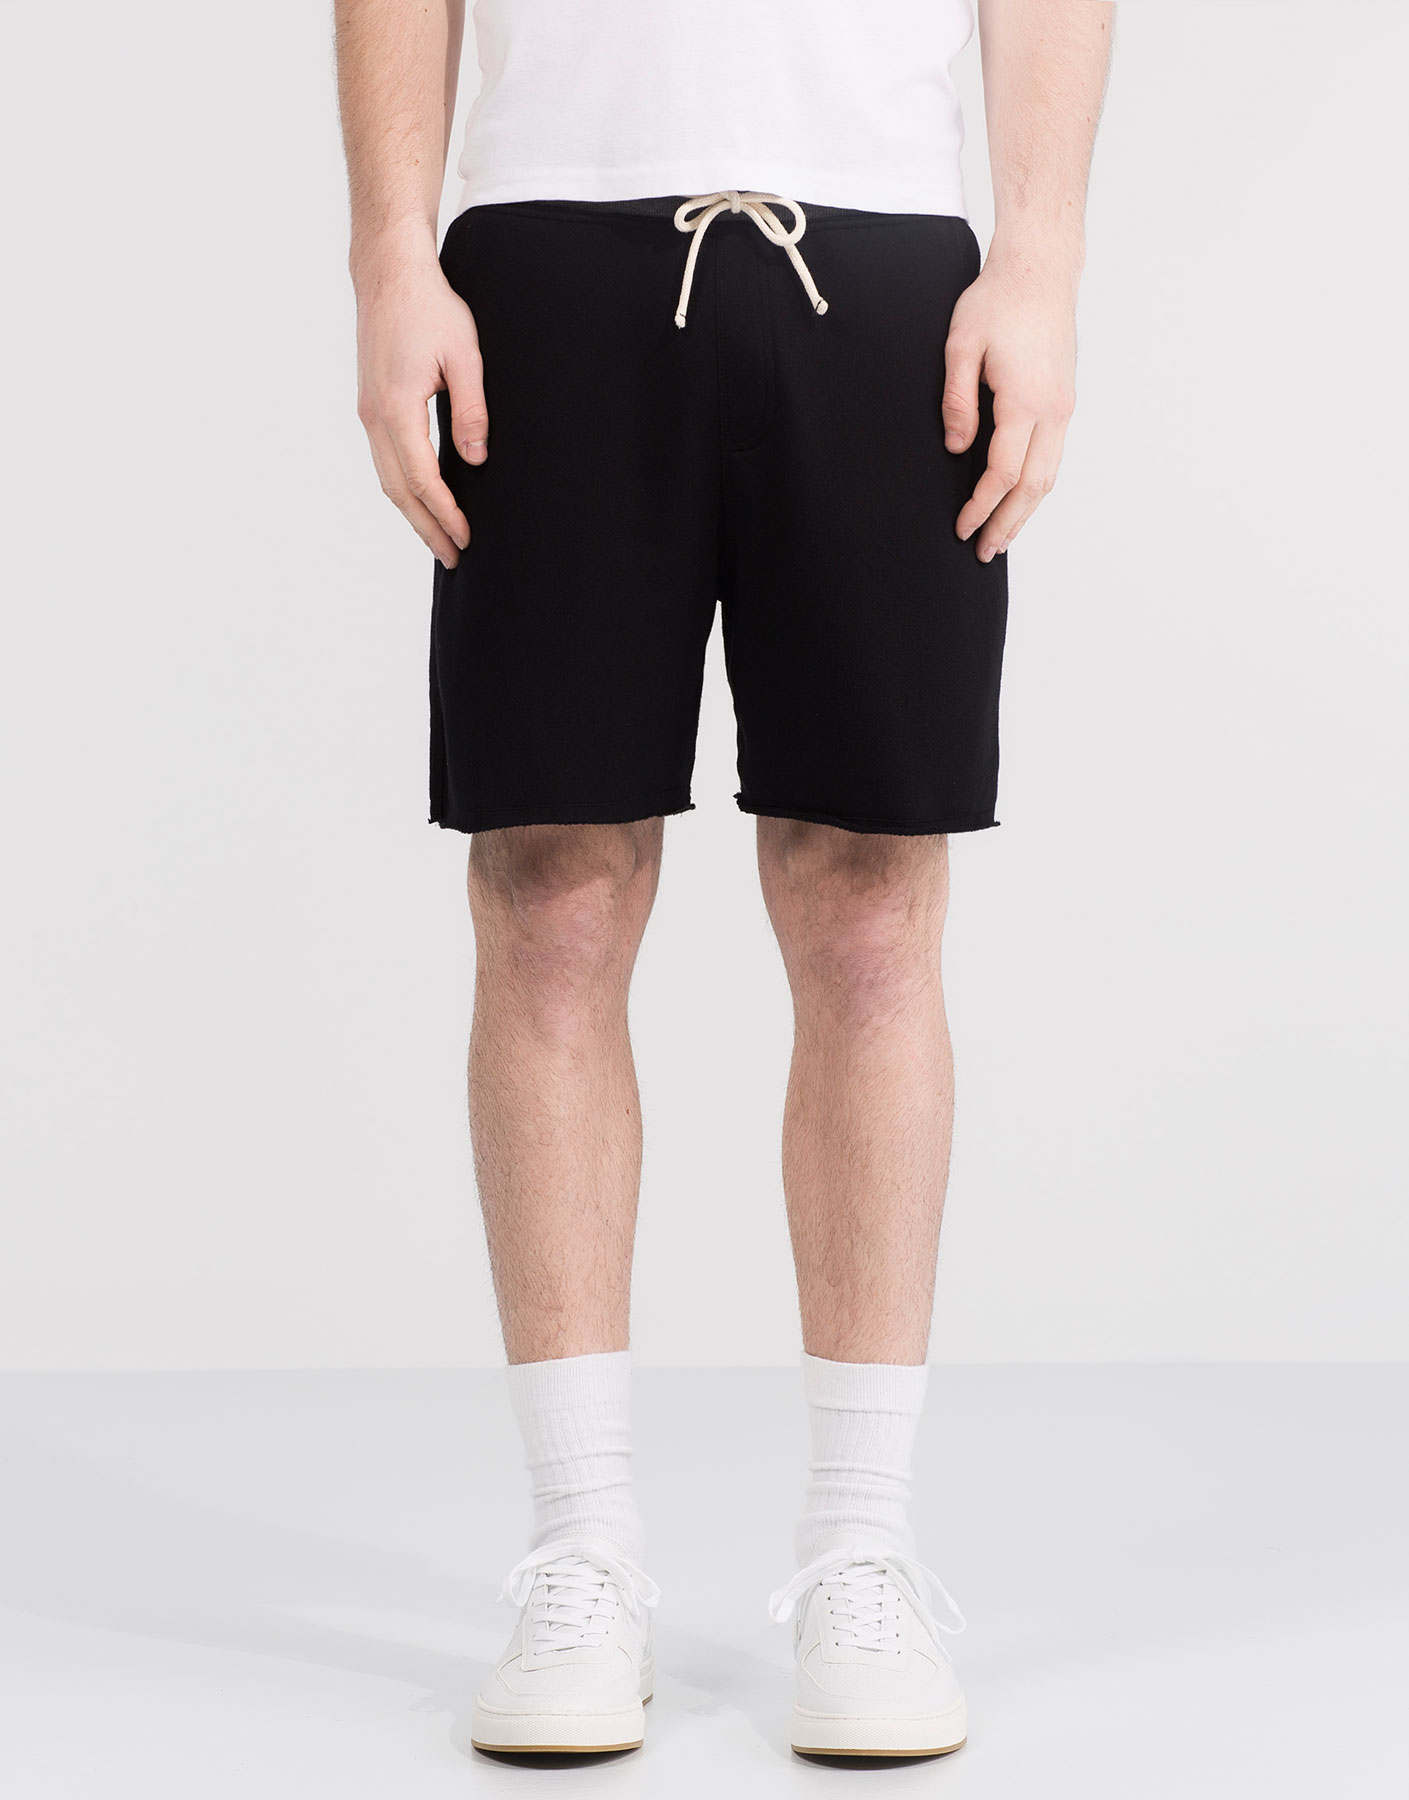 Jogging bermuda shorts with contrasting waist